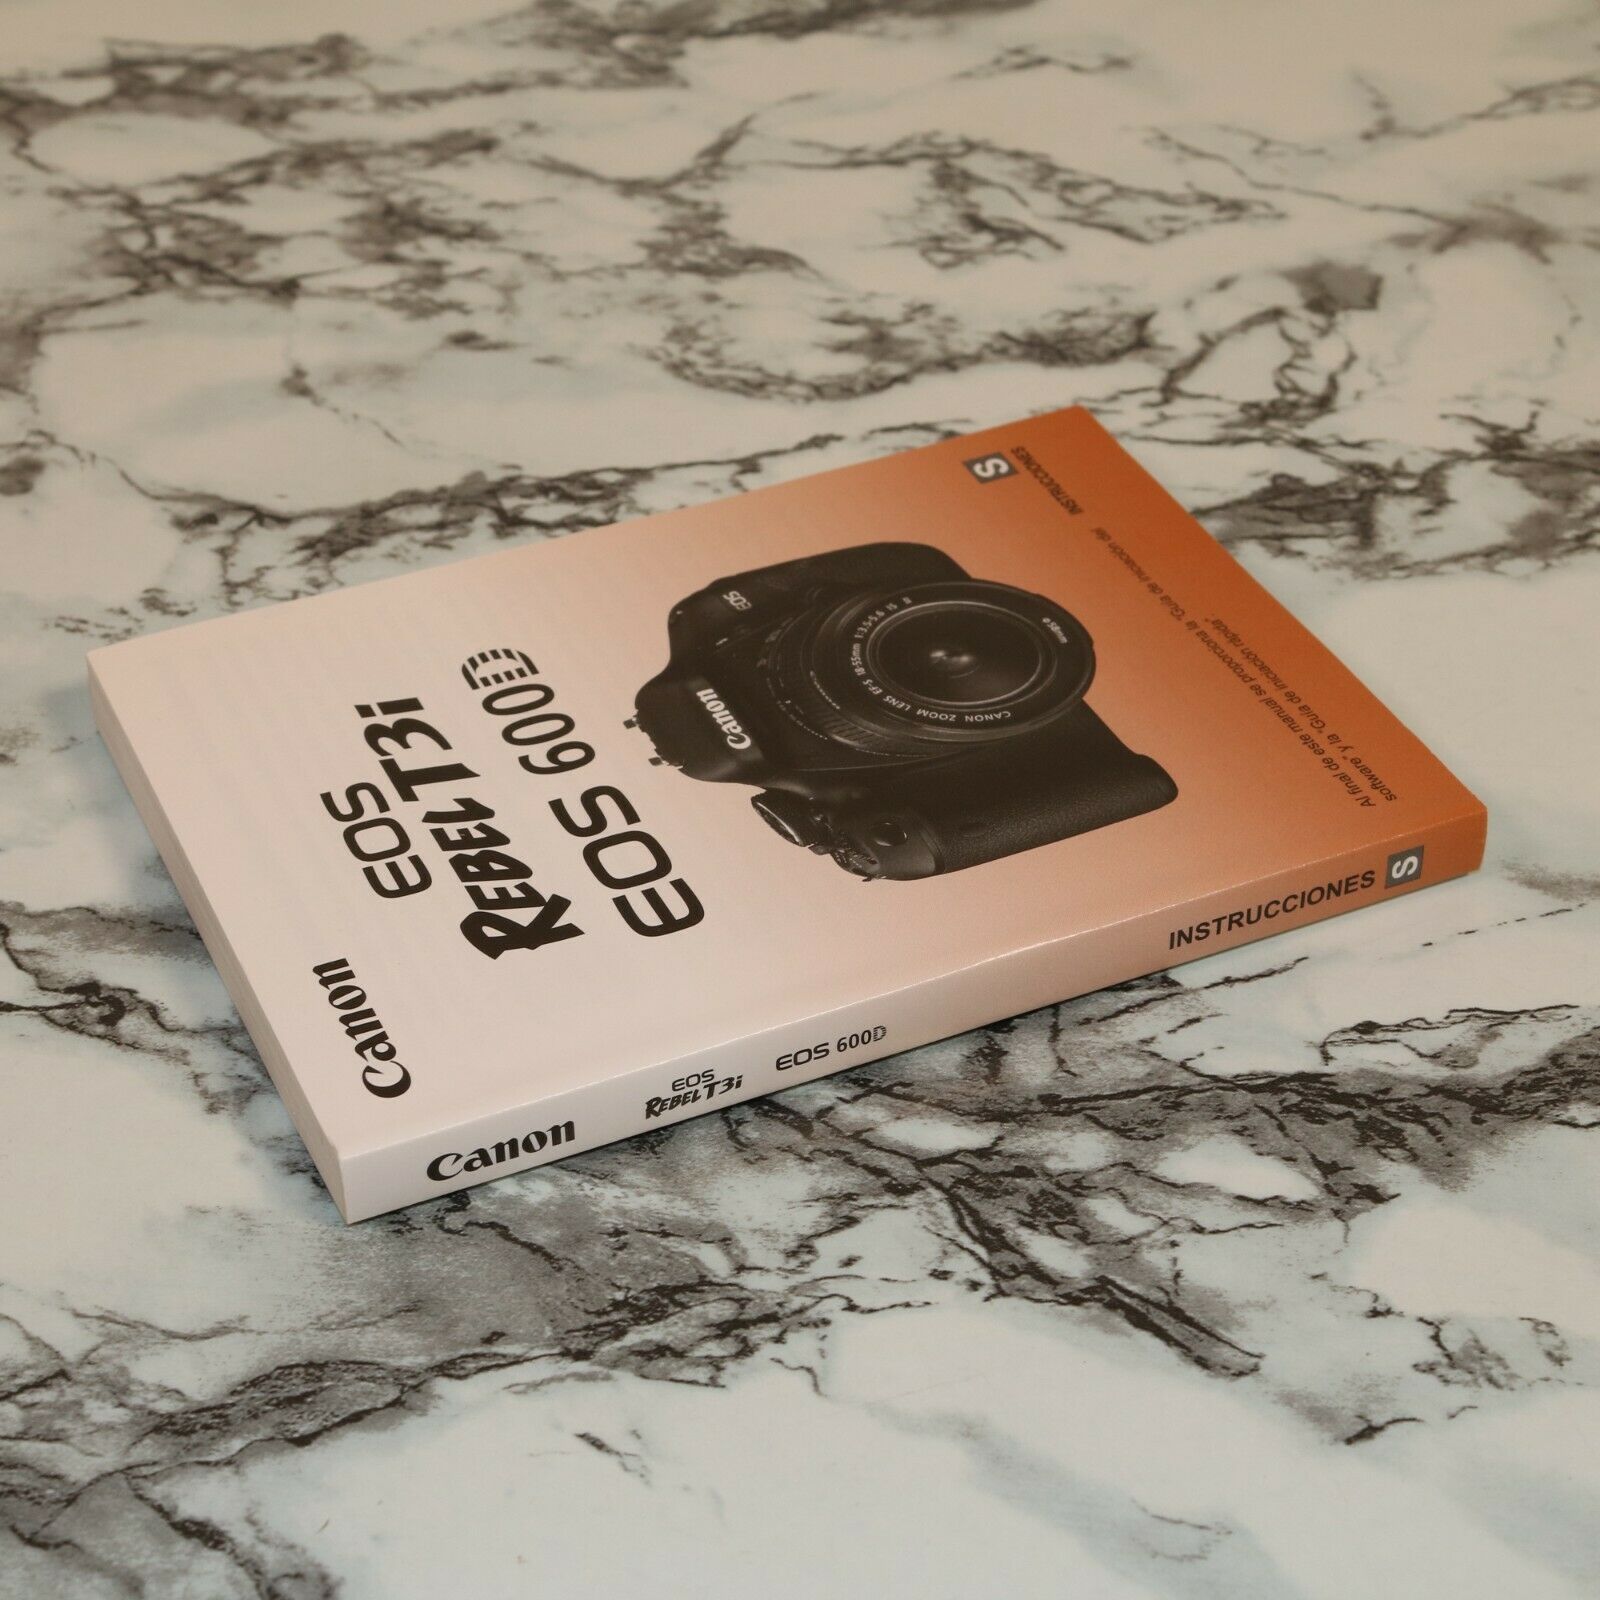 Canon EOS Rebel T3i 600D Camera Spanish Owner s Manual Instruction Guide Book - $11.18